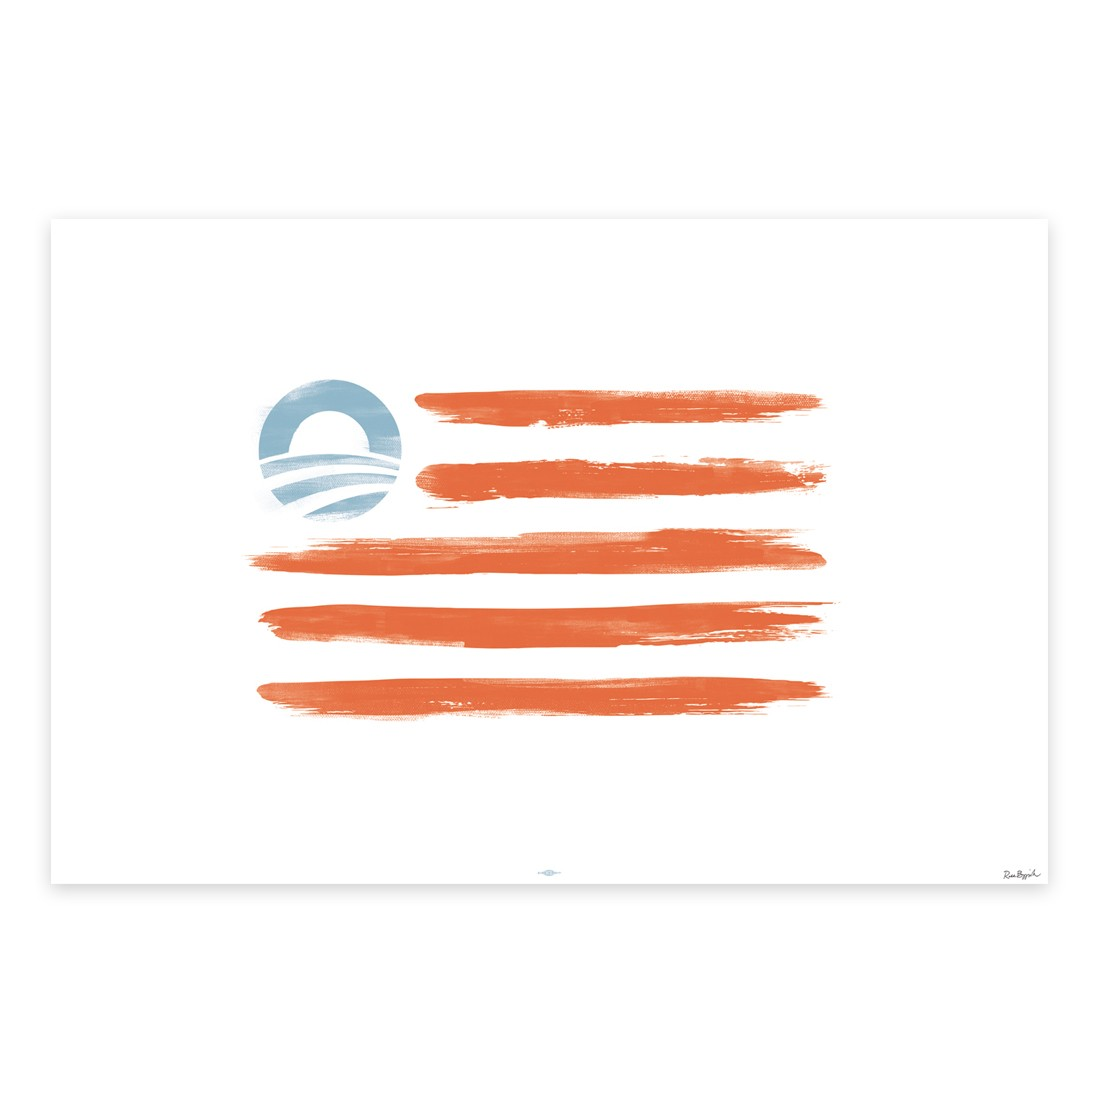 Obama Sells Posters Desecrating American Flag By Replacing Stars With Obama Logo